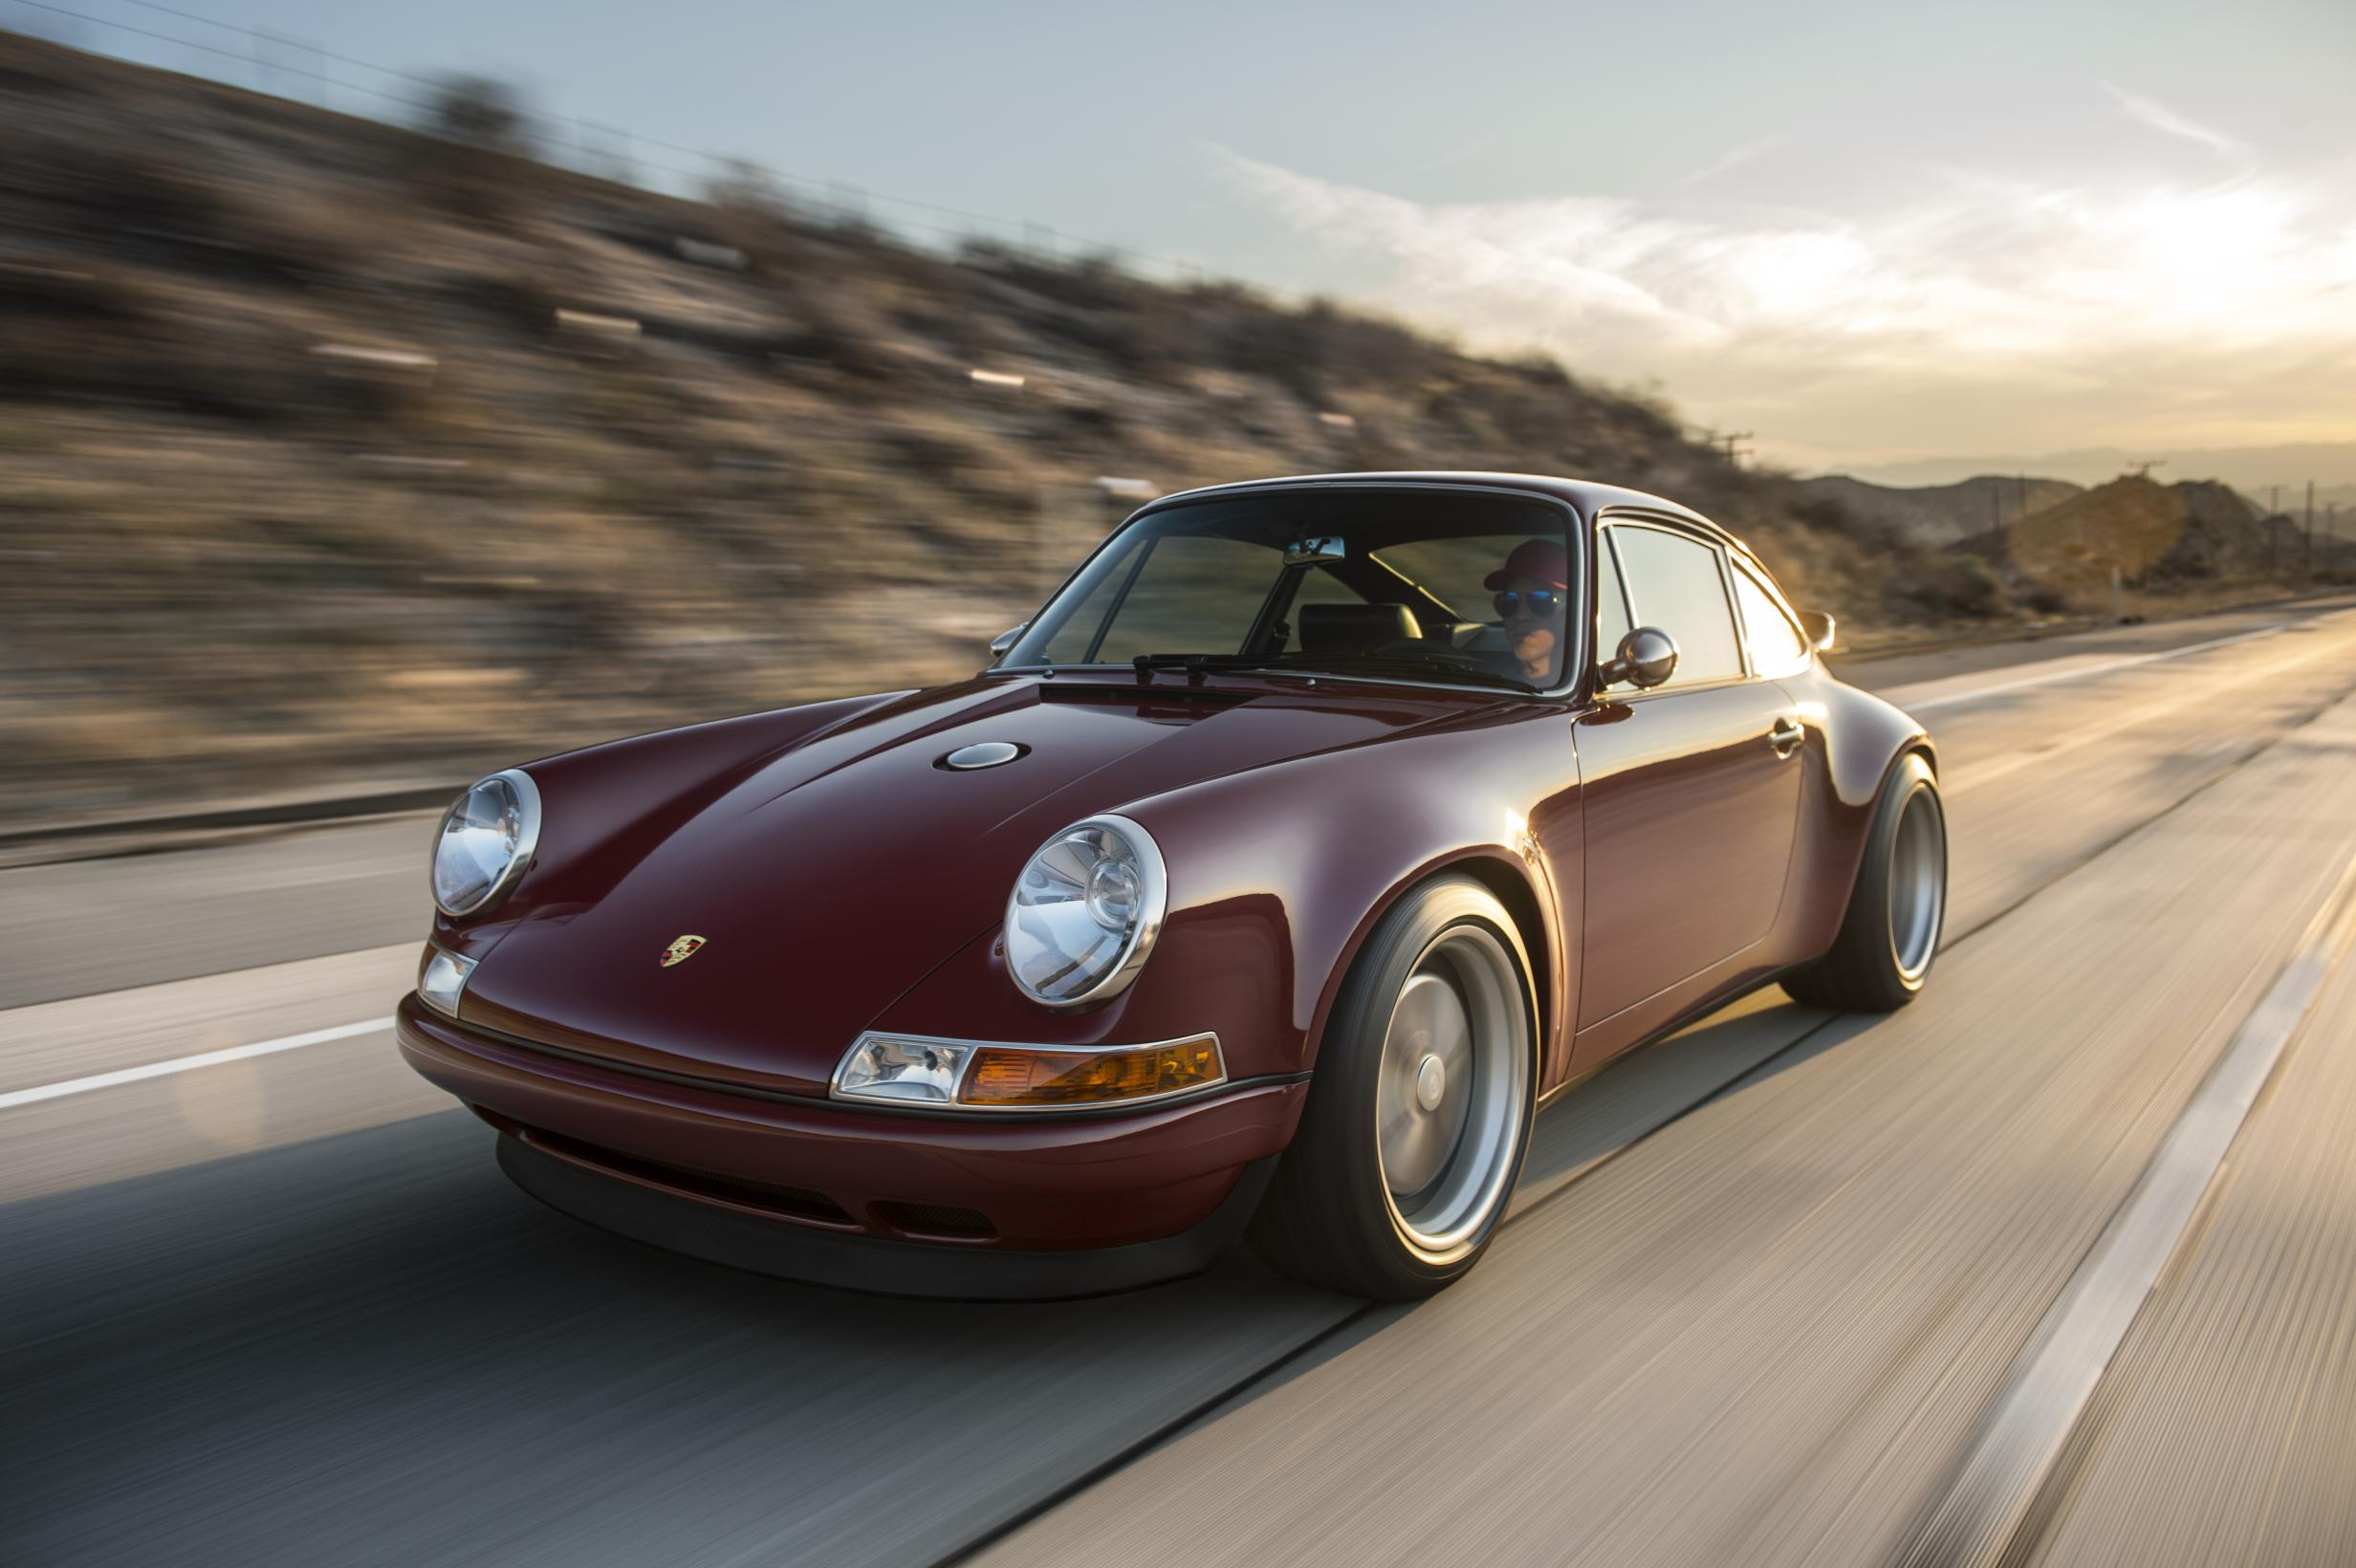 Singer To Display Two Standout S At Amelia Island Concours - Amelia car show